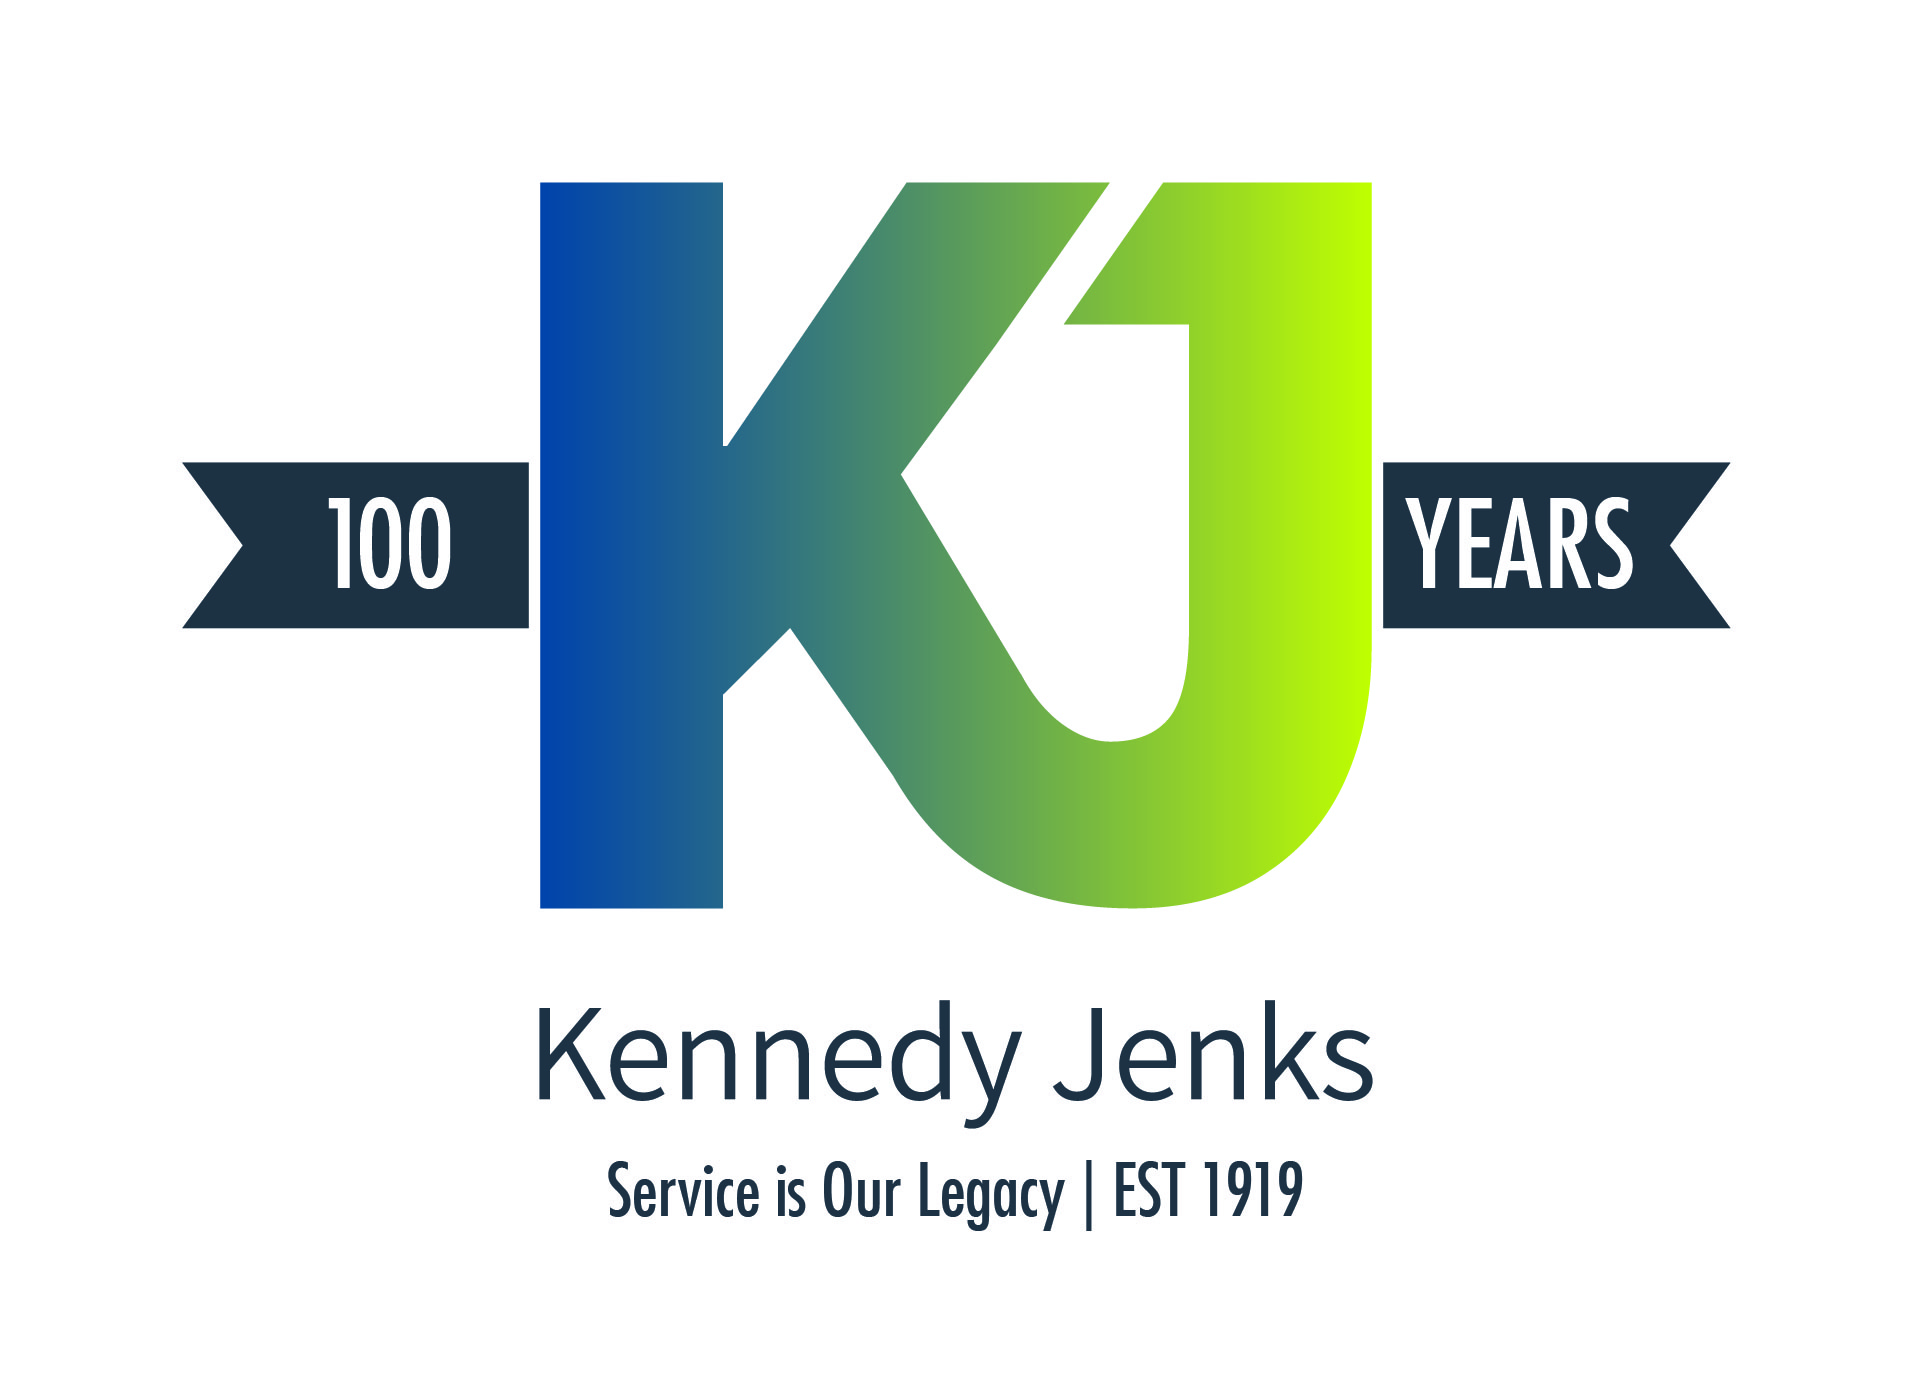 Kennedy Jenks Consultants